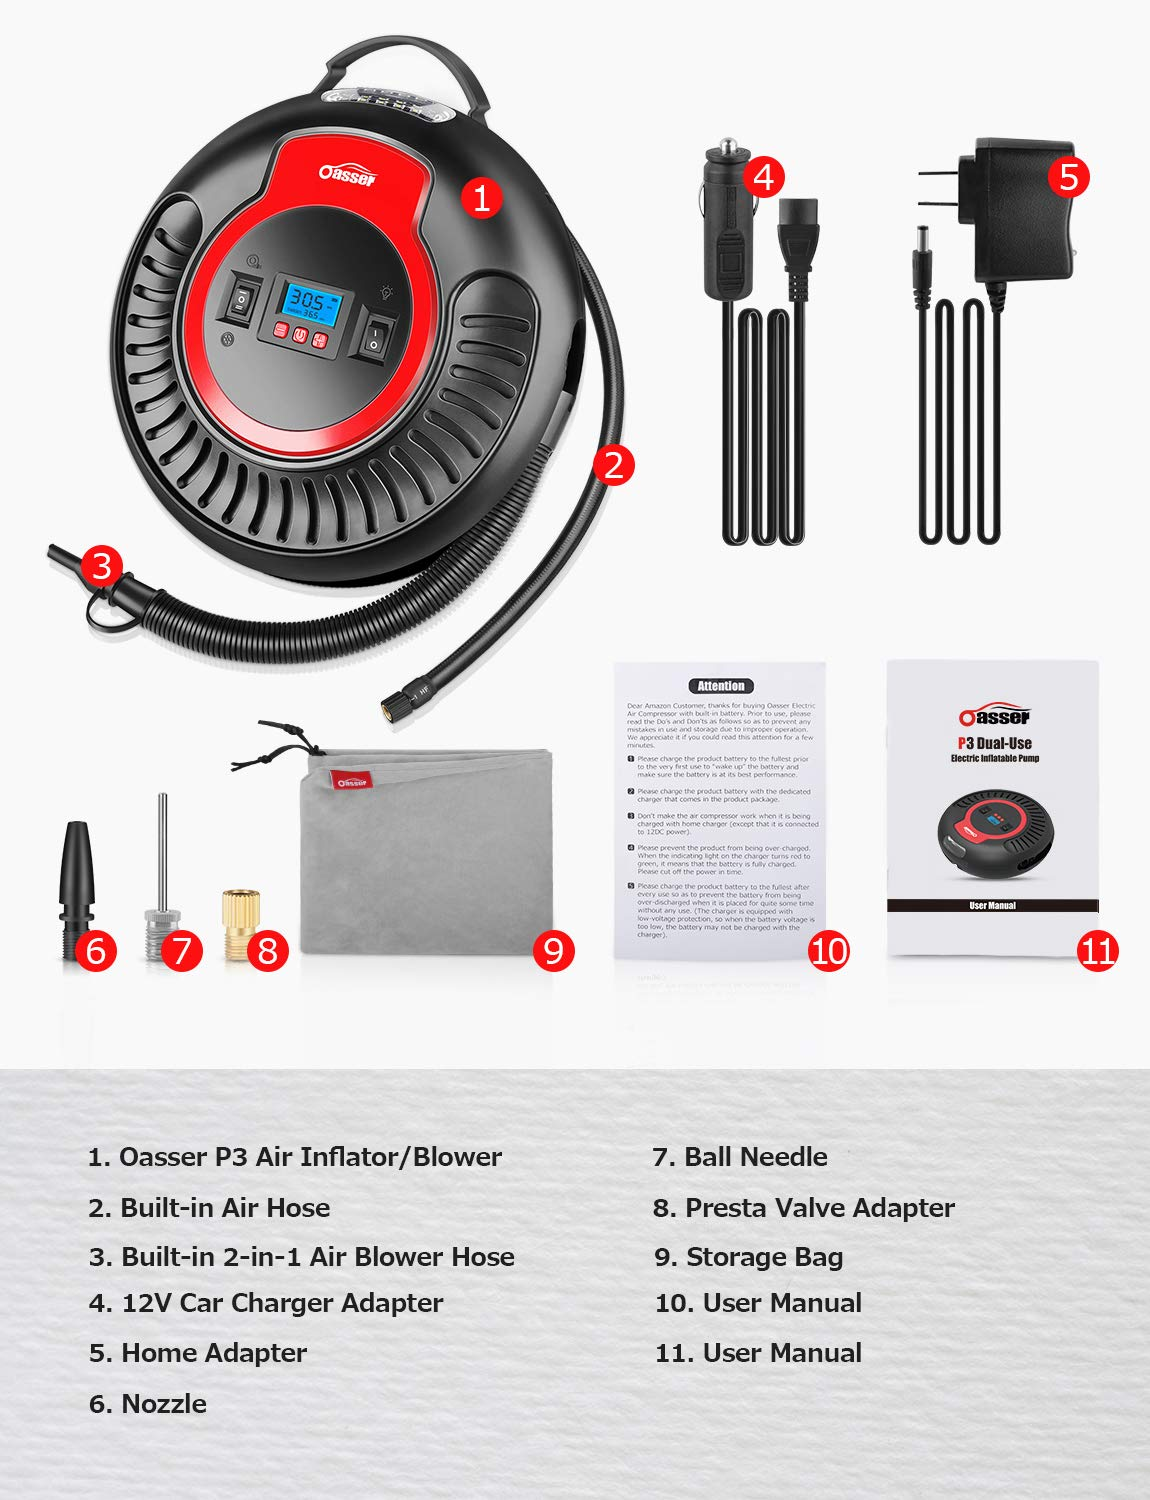 Tire Inflator Oasser Air Compressor Blower Multi-purpose Portable Inflator with 2000mAh Built-in Battery 4 Adapters for Cars Bicycles Balls Air Beds//Mattresses Toys and Other Inflatables 12V P3